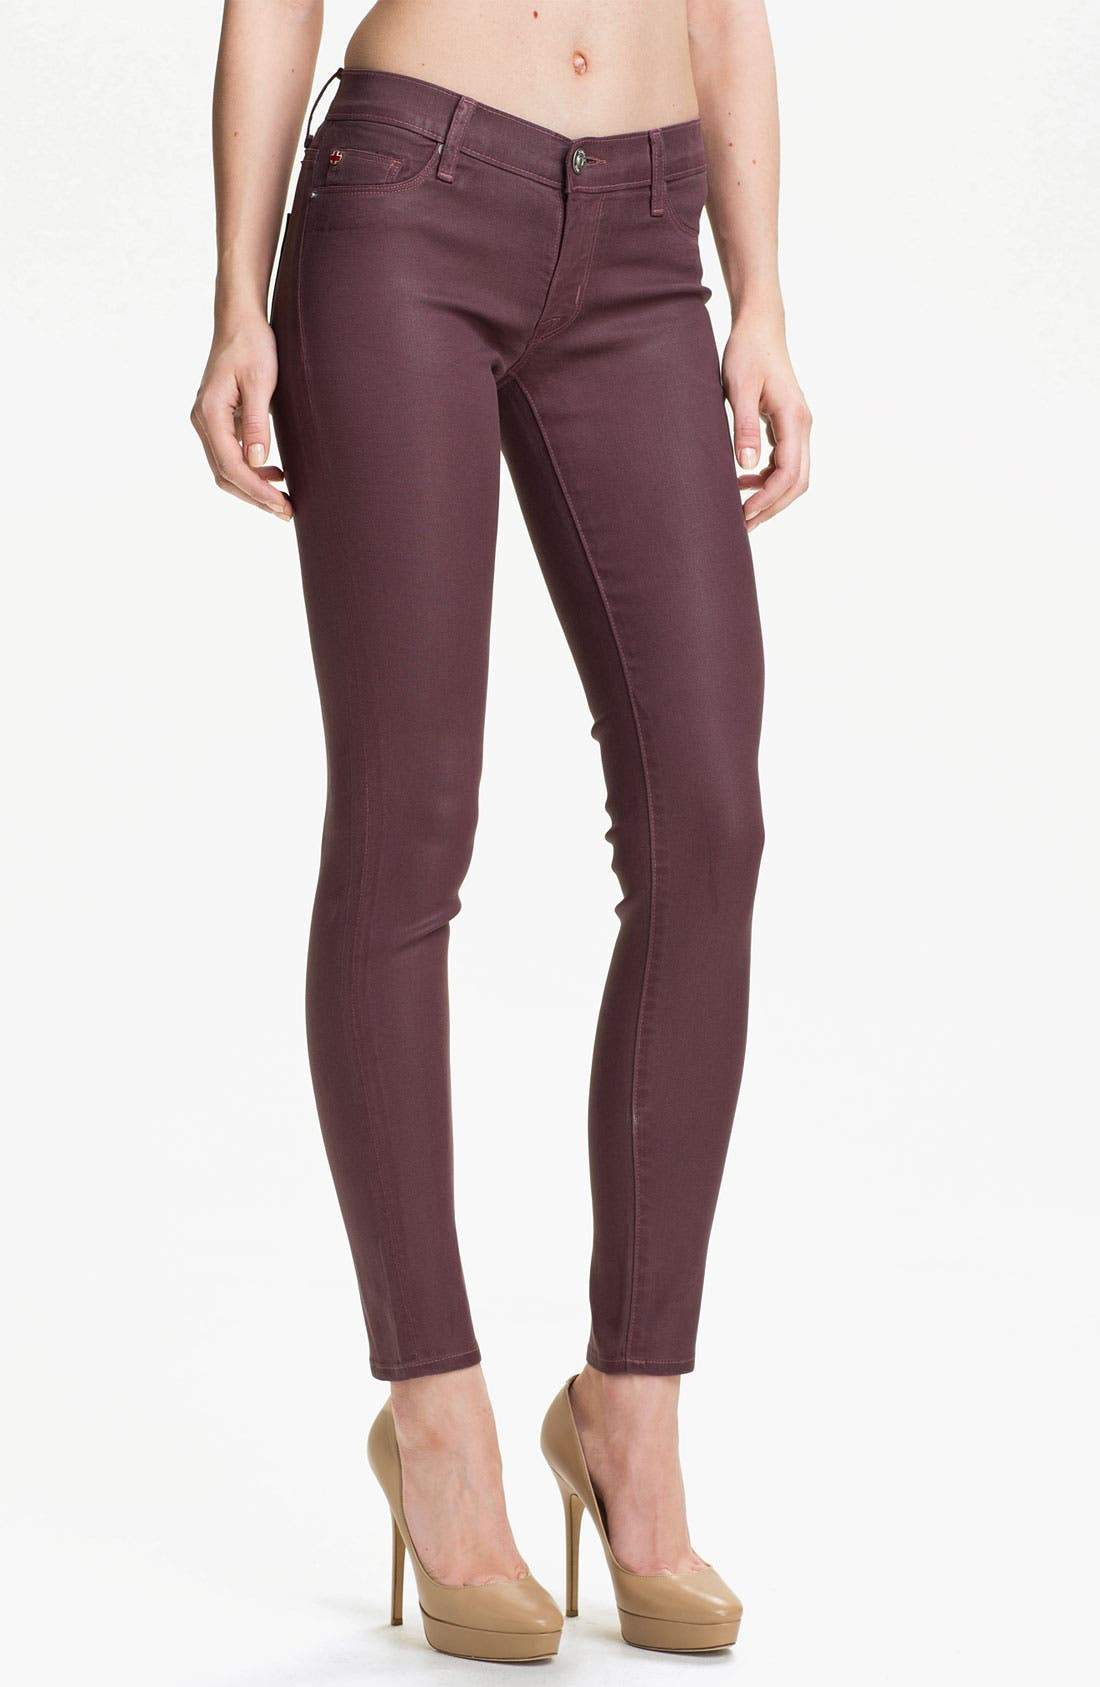 Alternate Image 1 Selected - Hudson Jeans 'Krista' Super Skinny Jeans (Steady As She Goes Wax)